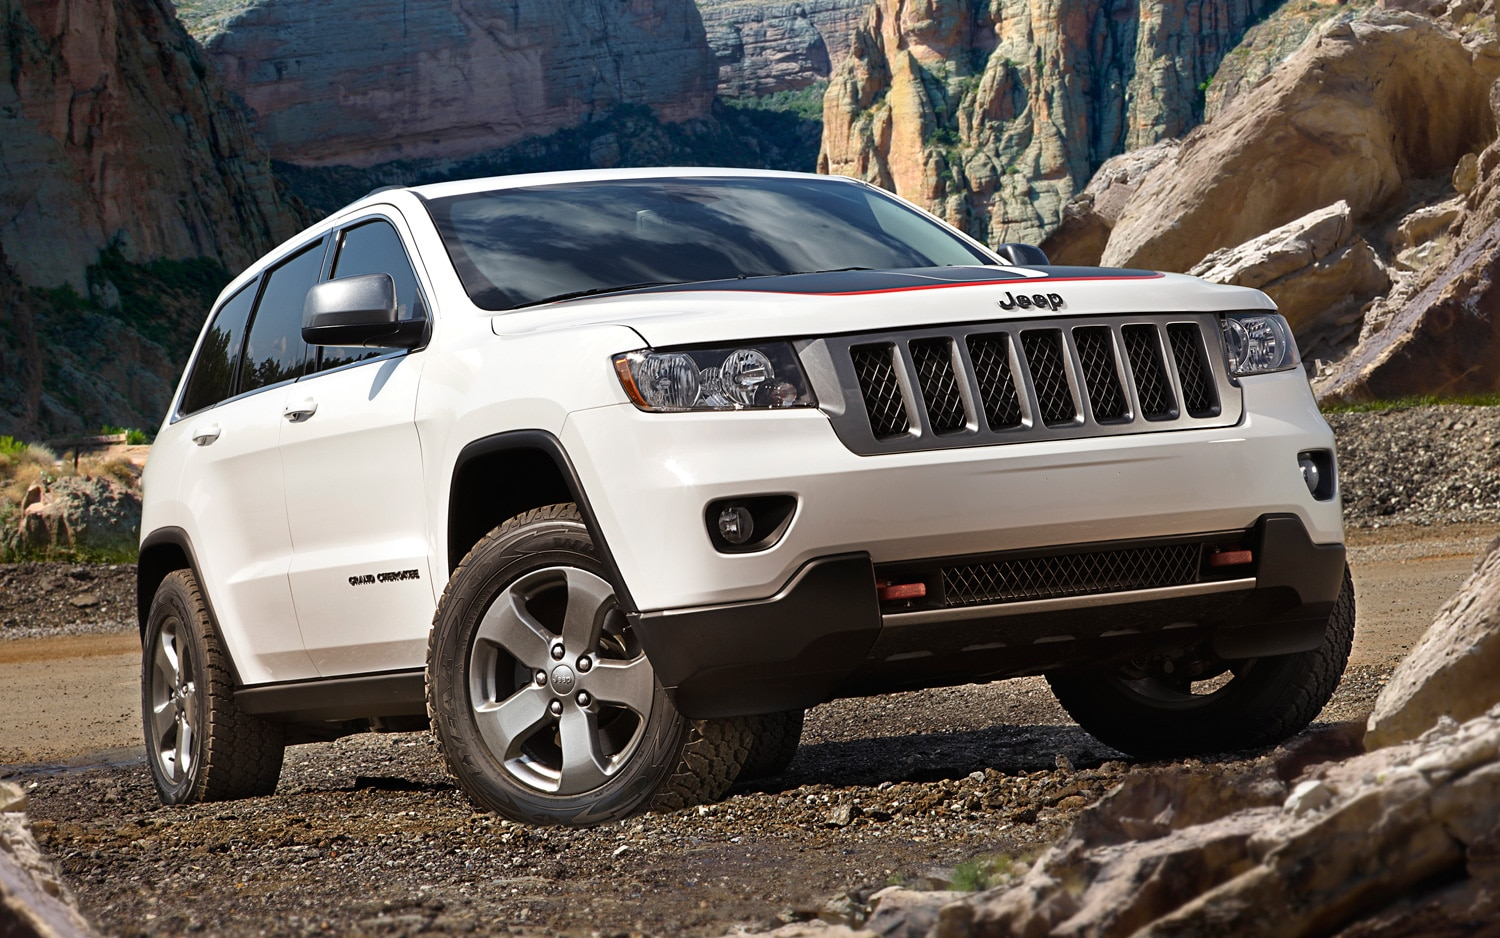 jeep reveals production grand cherokee trailhawk wrangler moab special editions. Black Bedroom Furniture Sets. Home Design Ideas